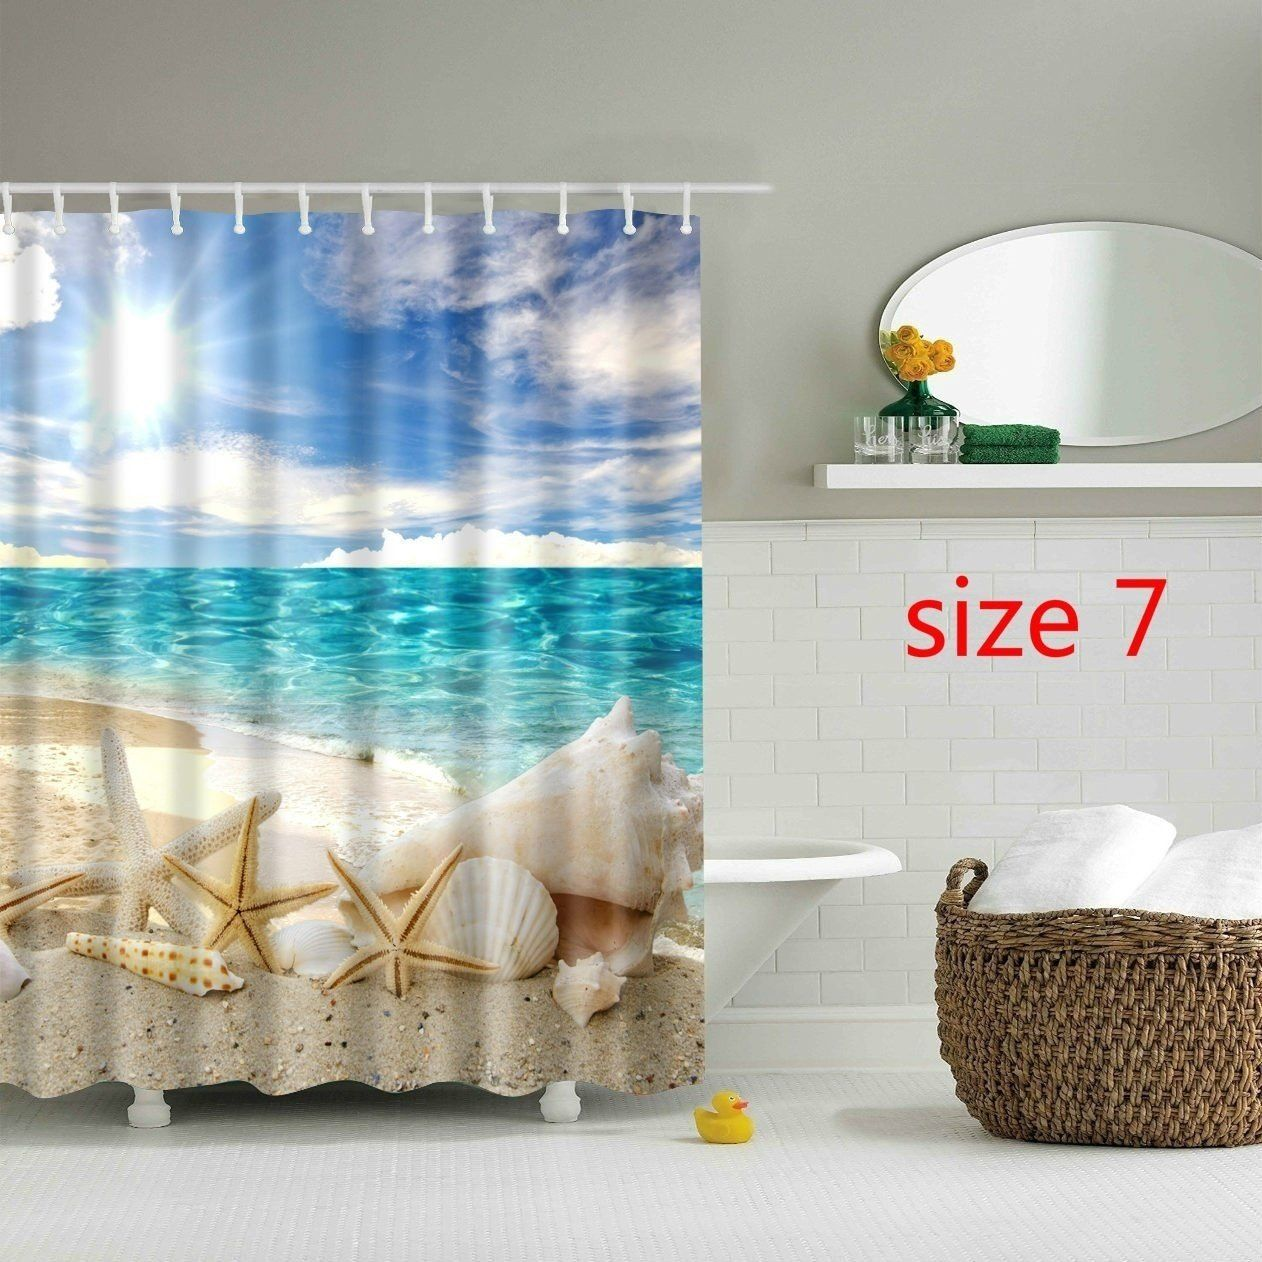 Bring The Beach Home These Ocean Themed Shower Curtains Will